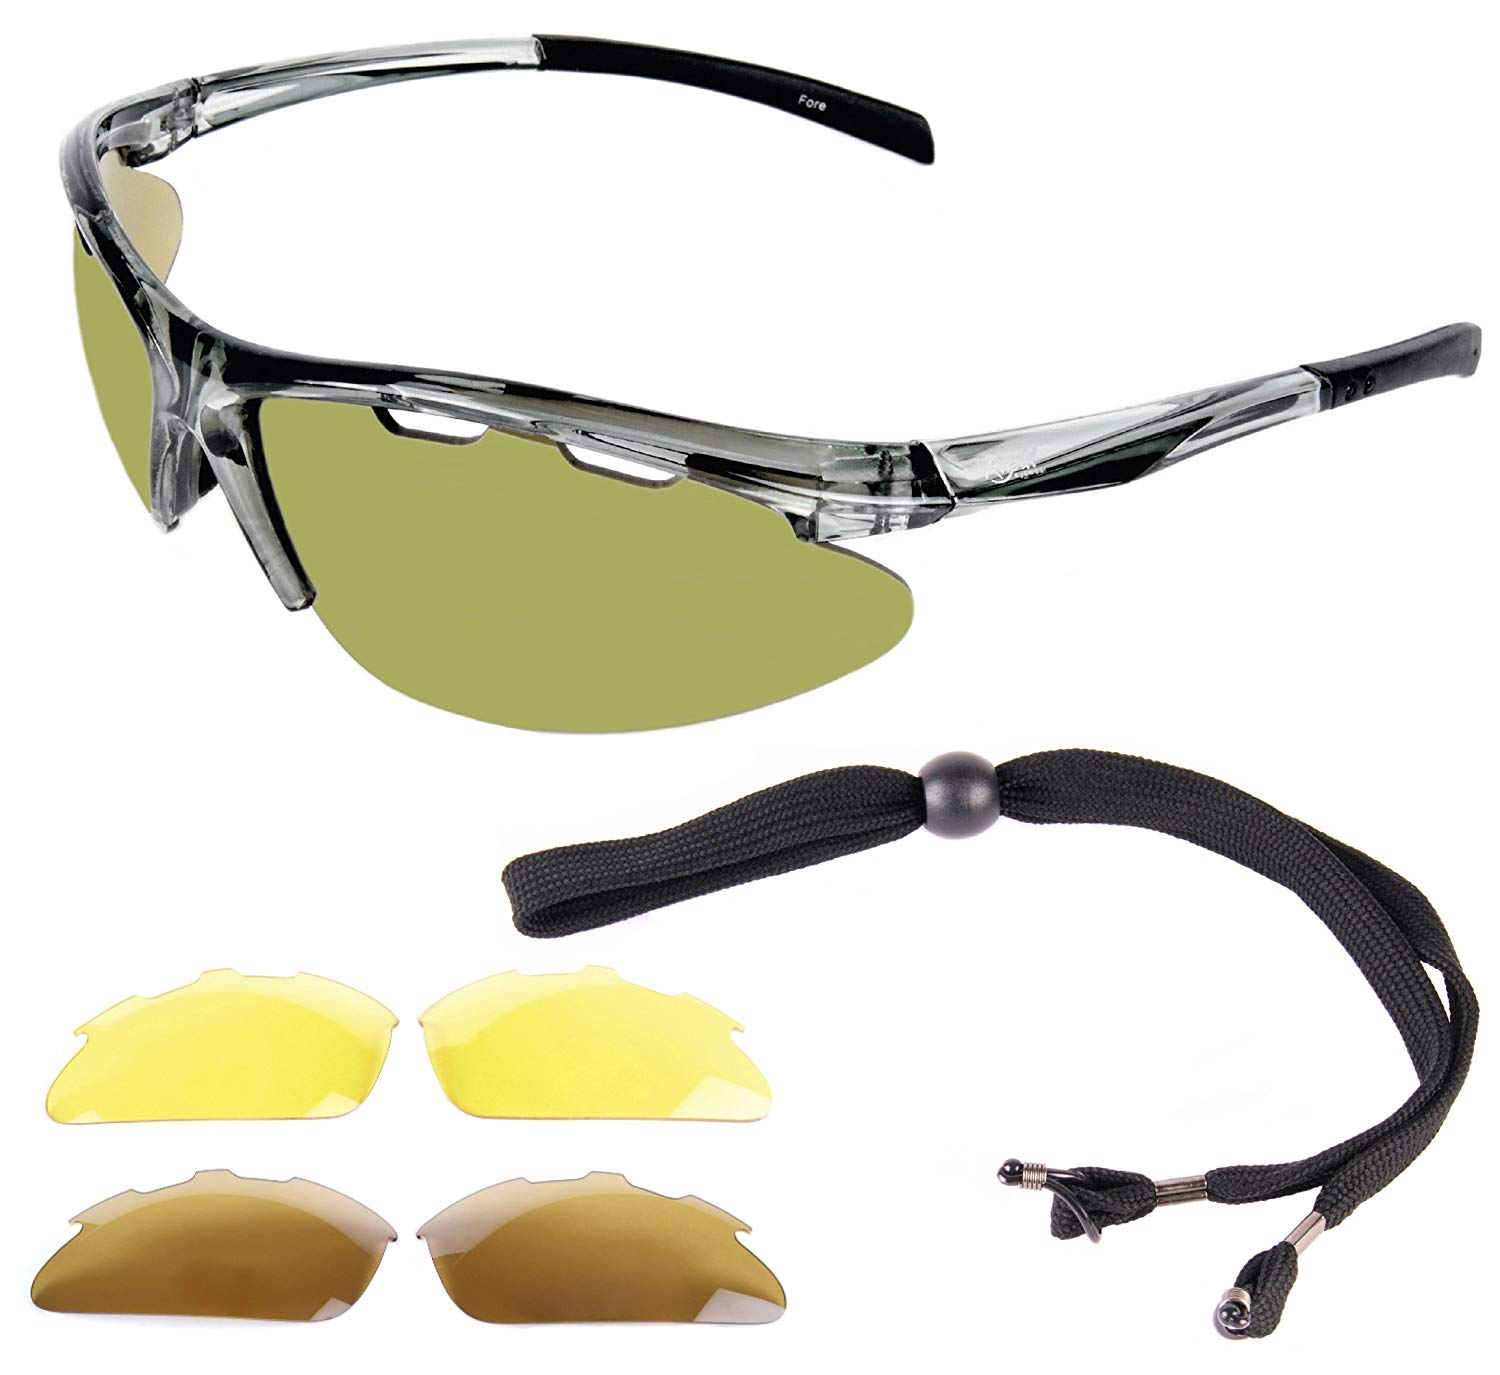 f3d6f7a4ec61 Get Quotations · Rapid Eyewear Fore Lightweight TR90 POLARIZED GOLF  SUNGLASSES for Men & Women With Interchangeable Lenses inc